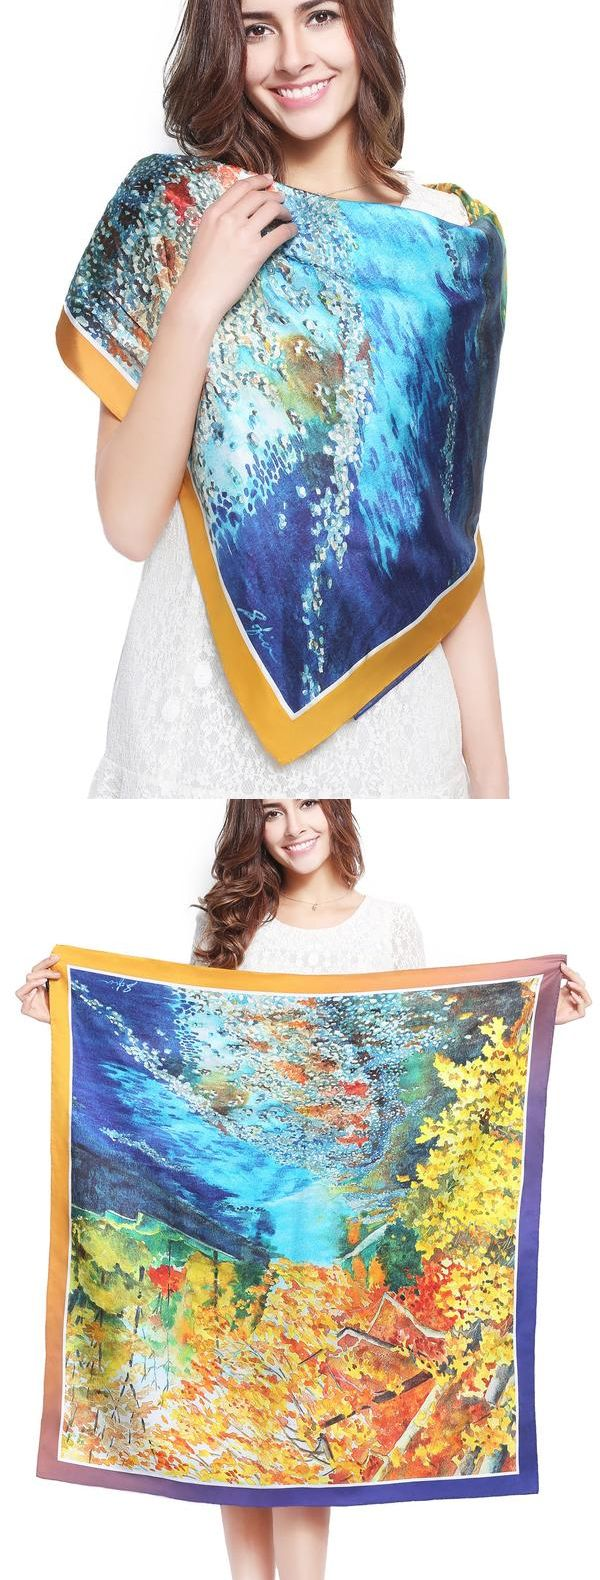 Beautiful Creek Print Silk Scarf! A variety of ways to wear, suitable for a variety of occasions!Elegant design created by Italian designer!More silk style at www.vividmoo.com!